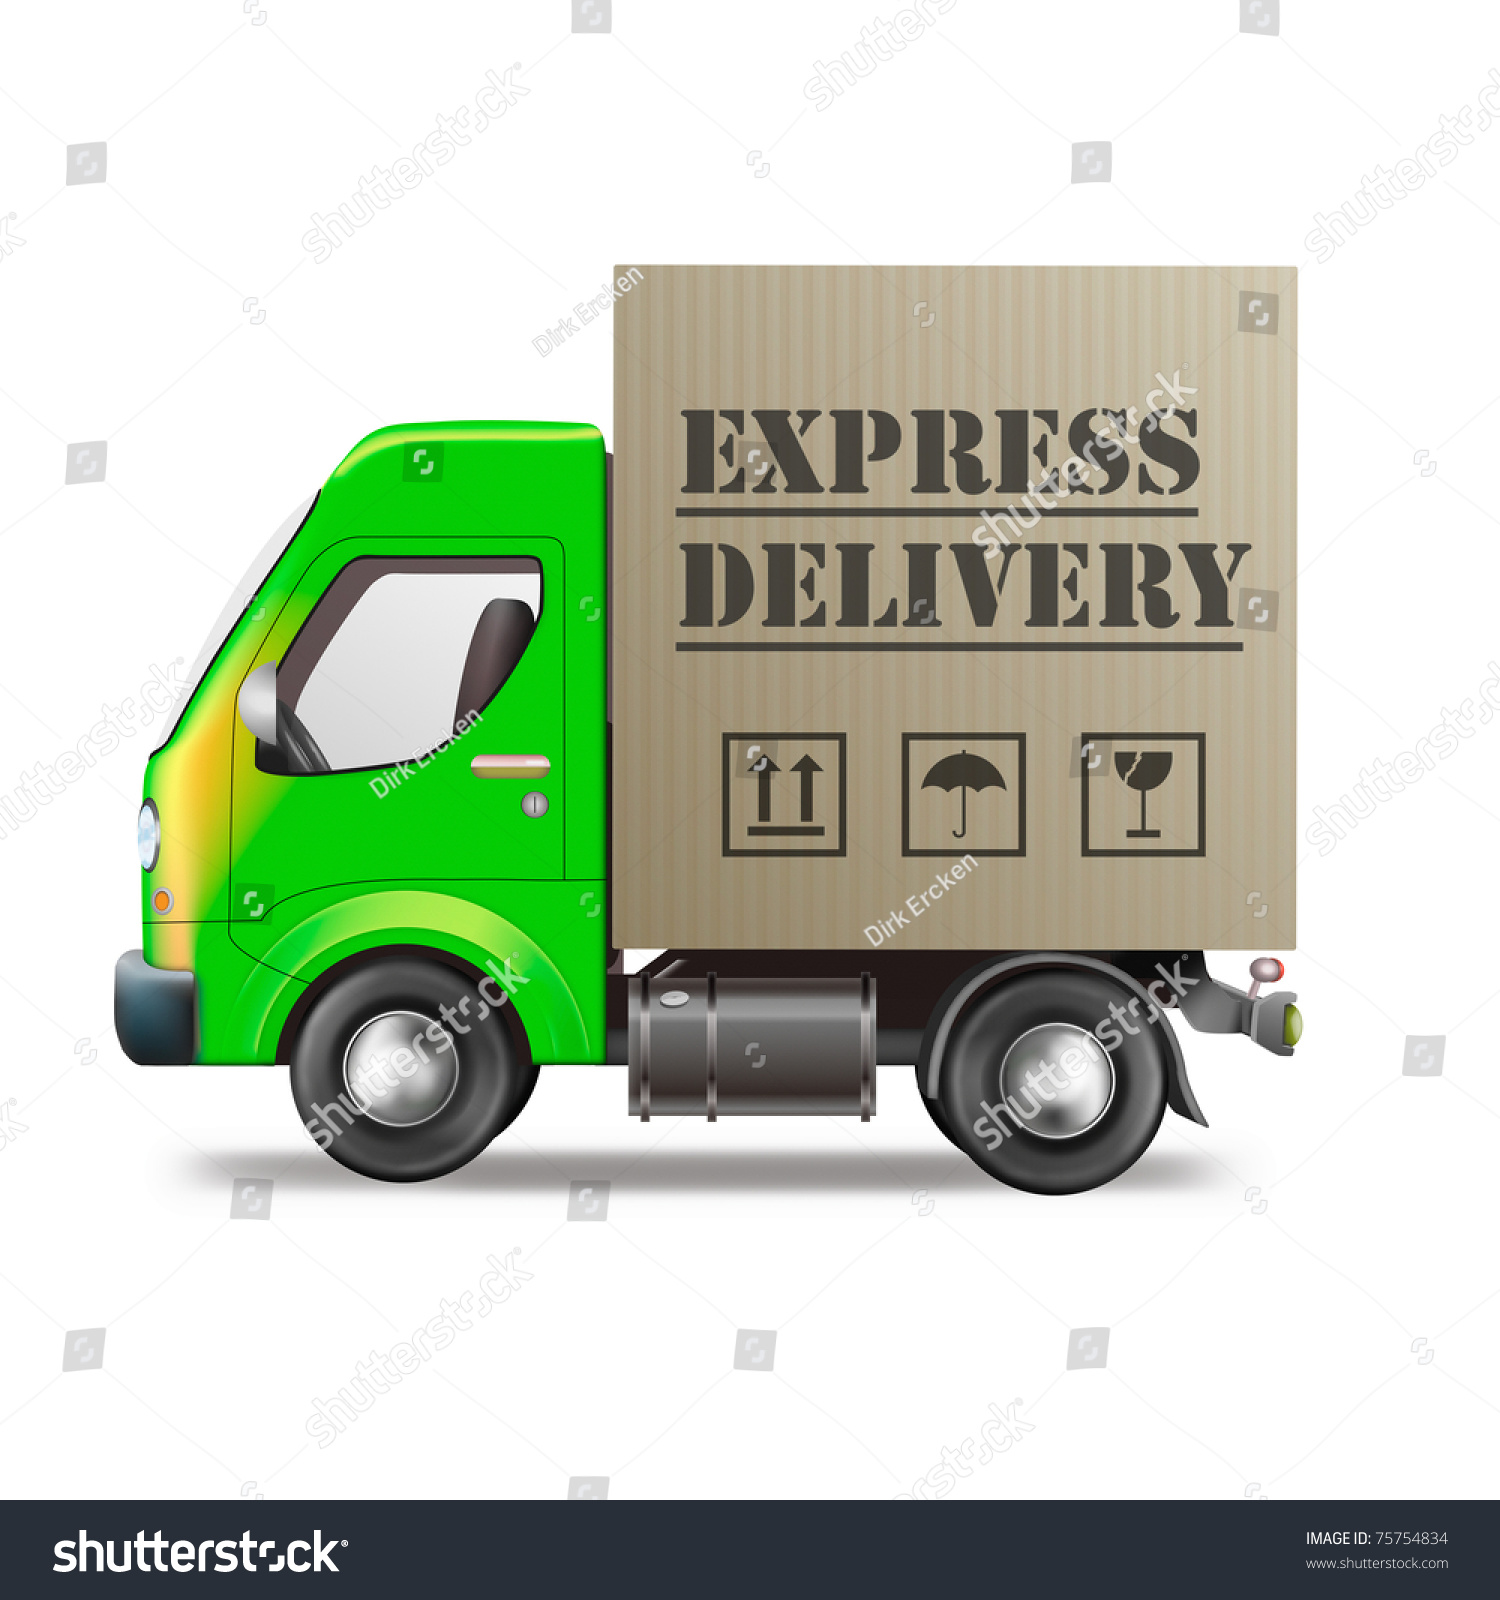 FAQ. Shipping. Which company do you use for delivery services? The tracking number appears to be invalid on the delivery company's online tracking system. What does that mean? - Please login to your Shopping Express account and uncheck the subscribe newsletter option and click update.